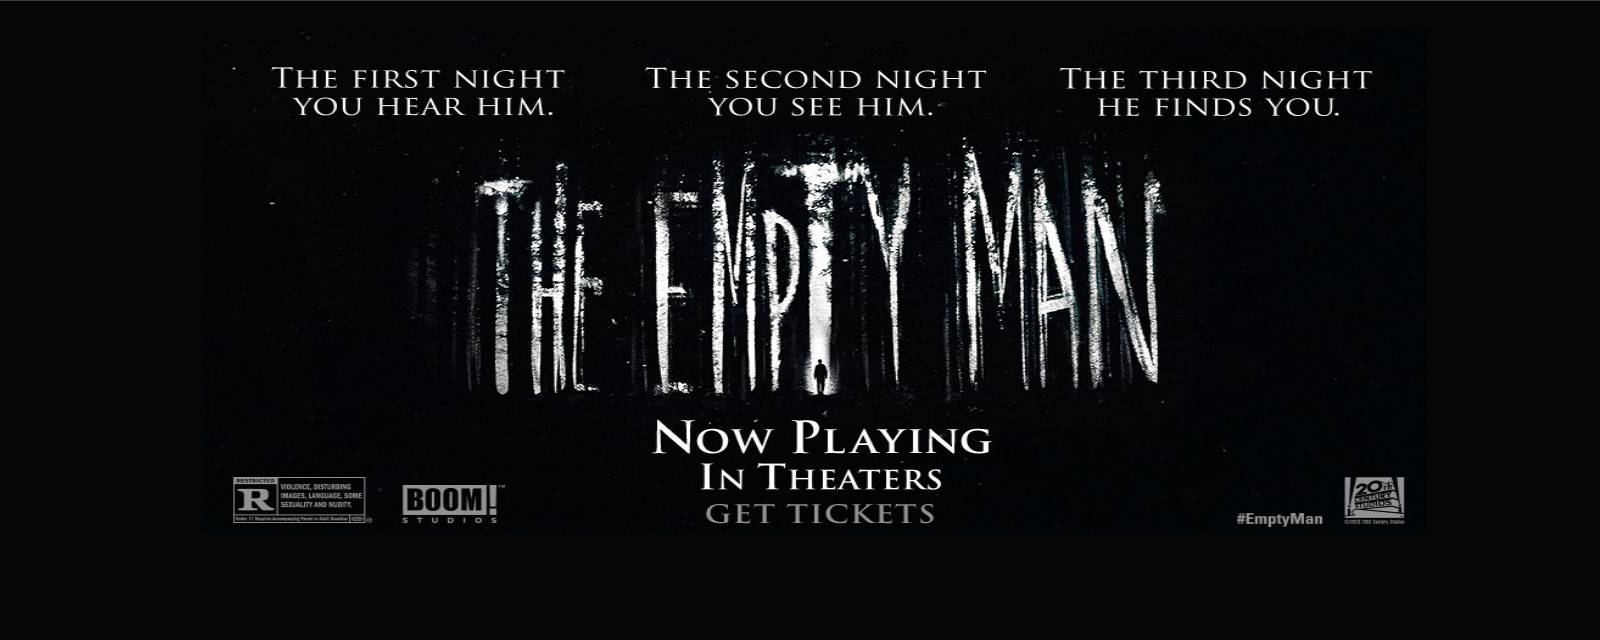 The Empty Man image